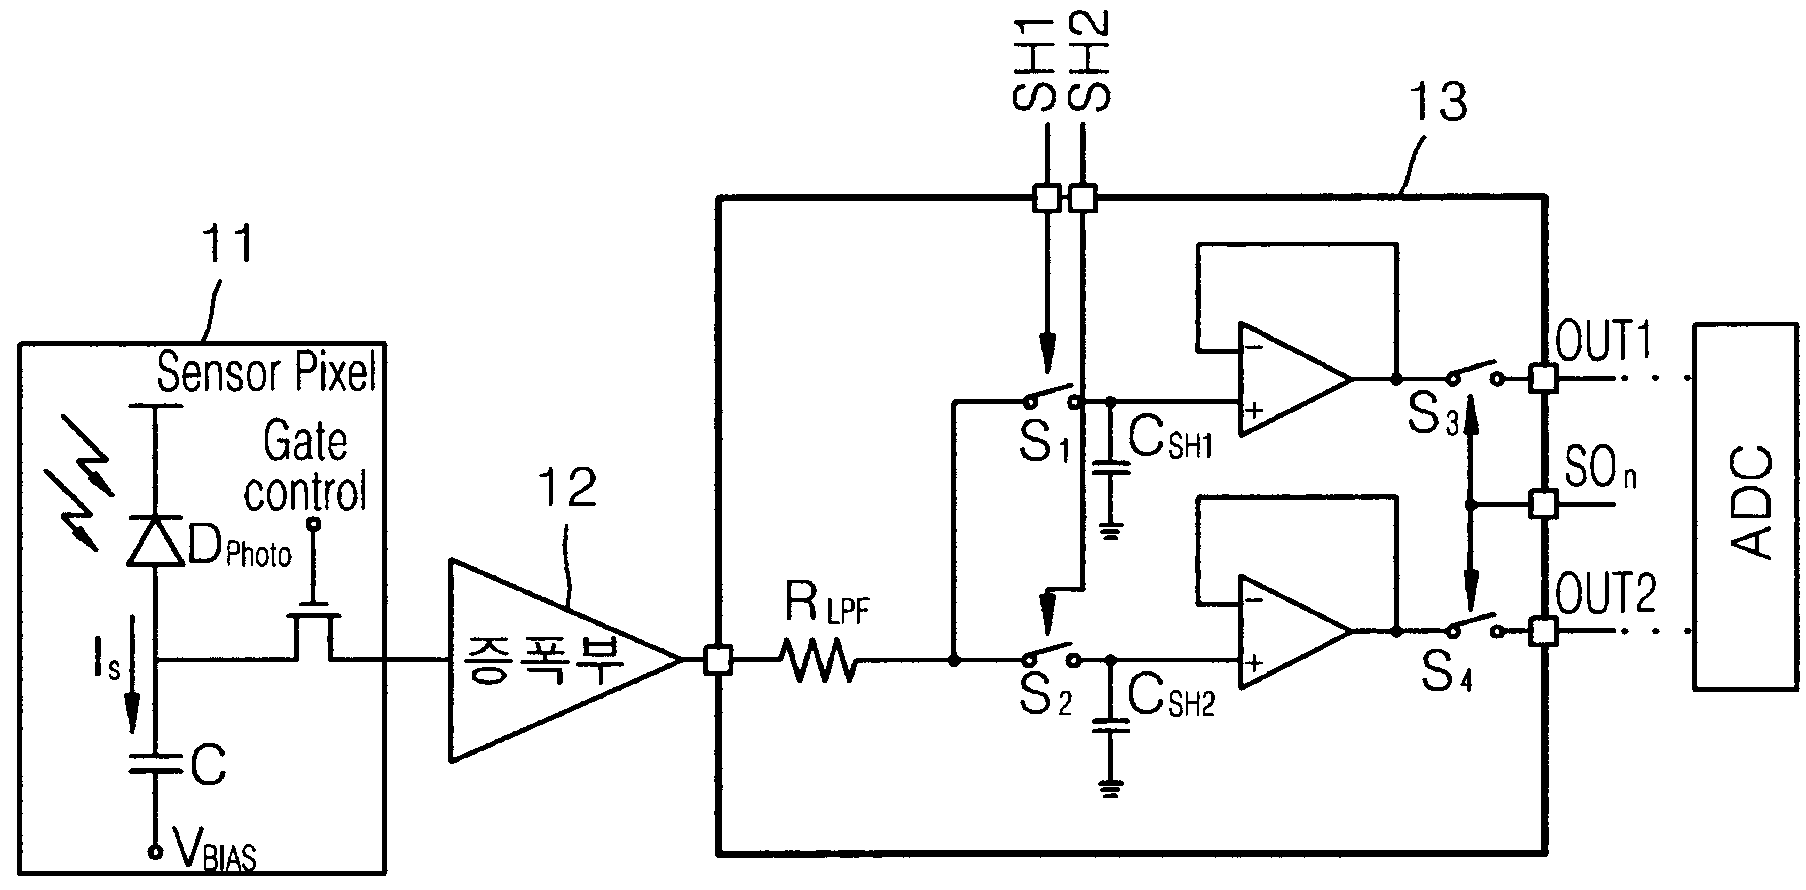 Optical System Temperature Dependence In Edfa also Myw9 gdd9 likewise Virtual saxophone additionally Ecg Circuit Analysis And Design Simulation By Multisim likewise The Differential  lifier  mon Mode Error Part 2. on amplifier noise figure